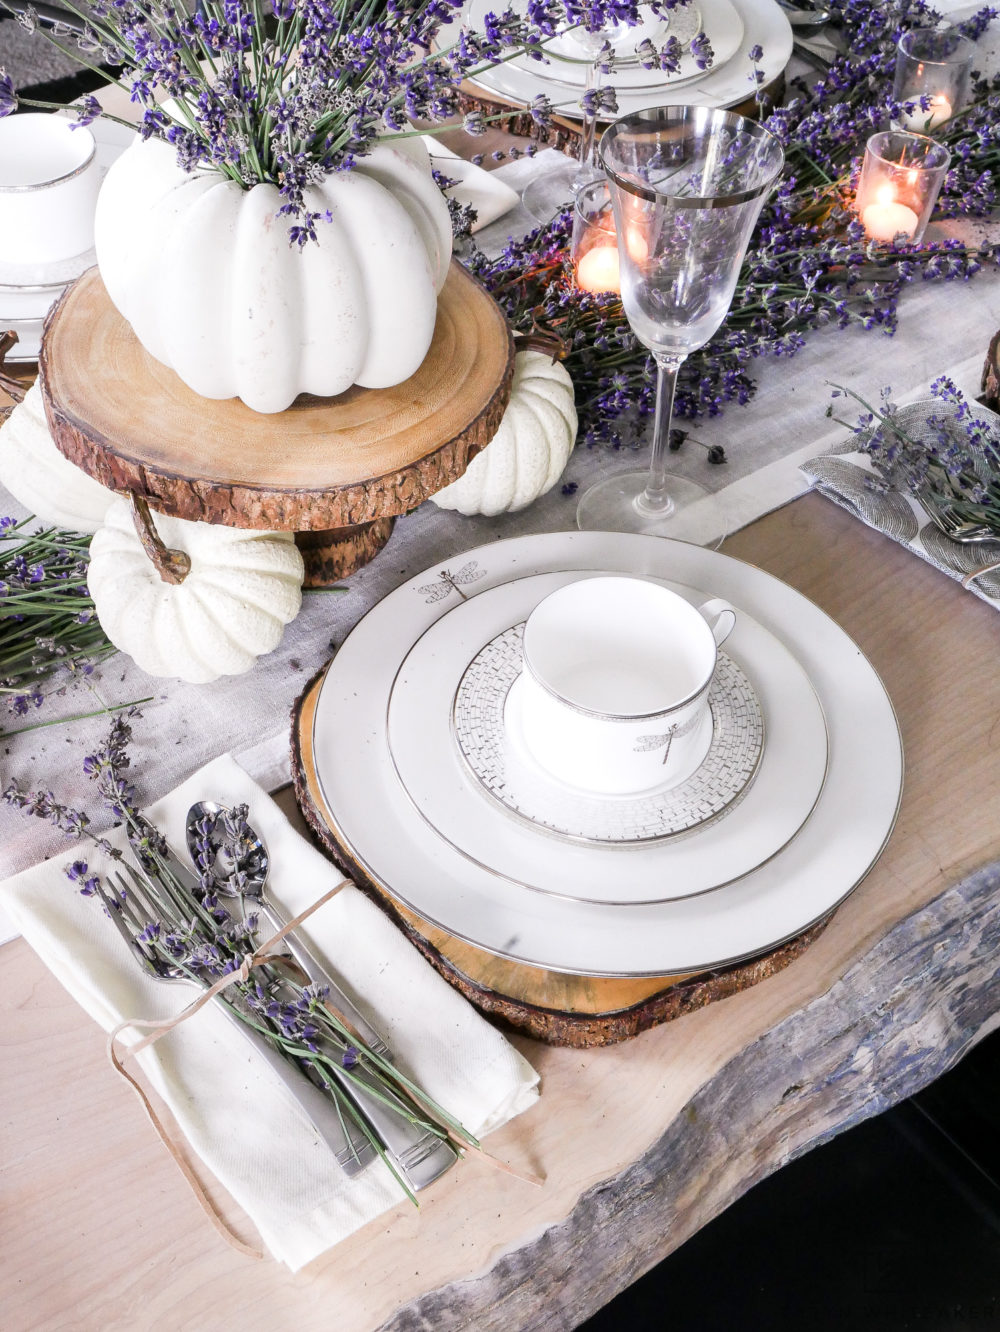 Create a classy and elegant Lavender Fall Tablescape filled with blooms from your own yard! Give it a fall look using white pumpkins and tea light candles.